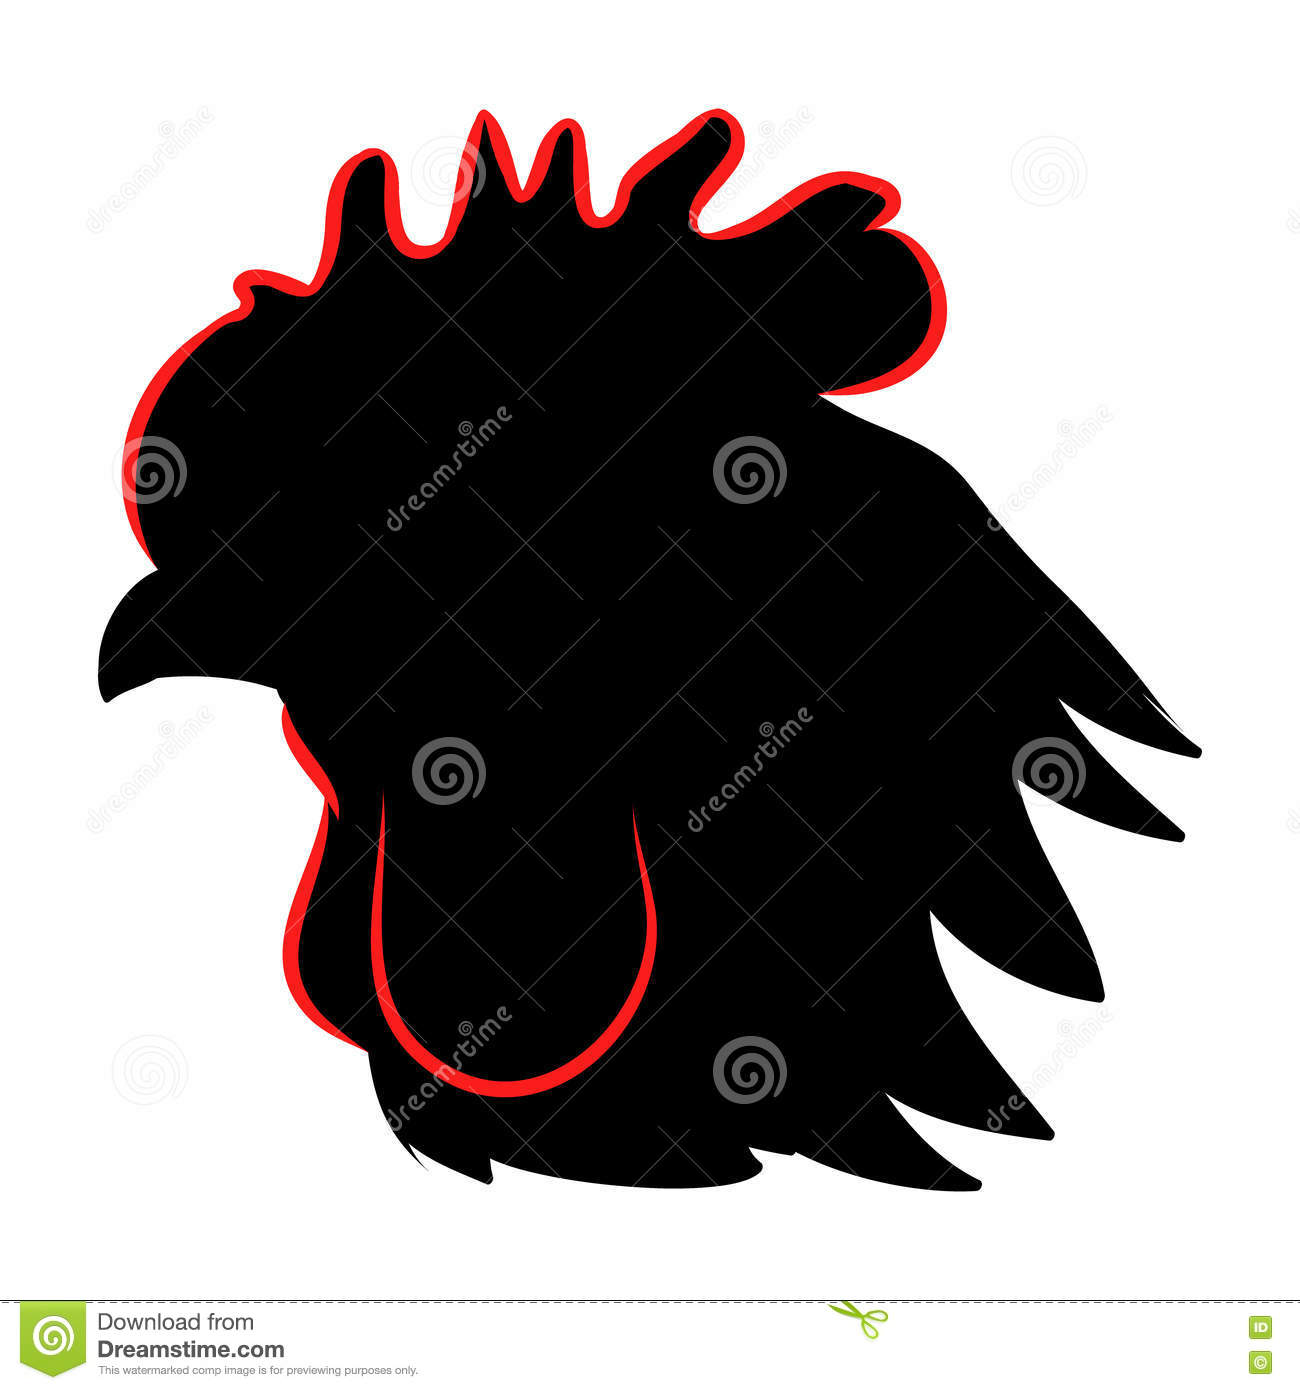 Rooster head silhouette stock vector. Illustration of ...